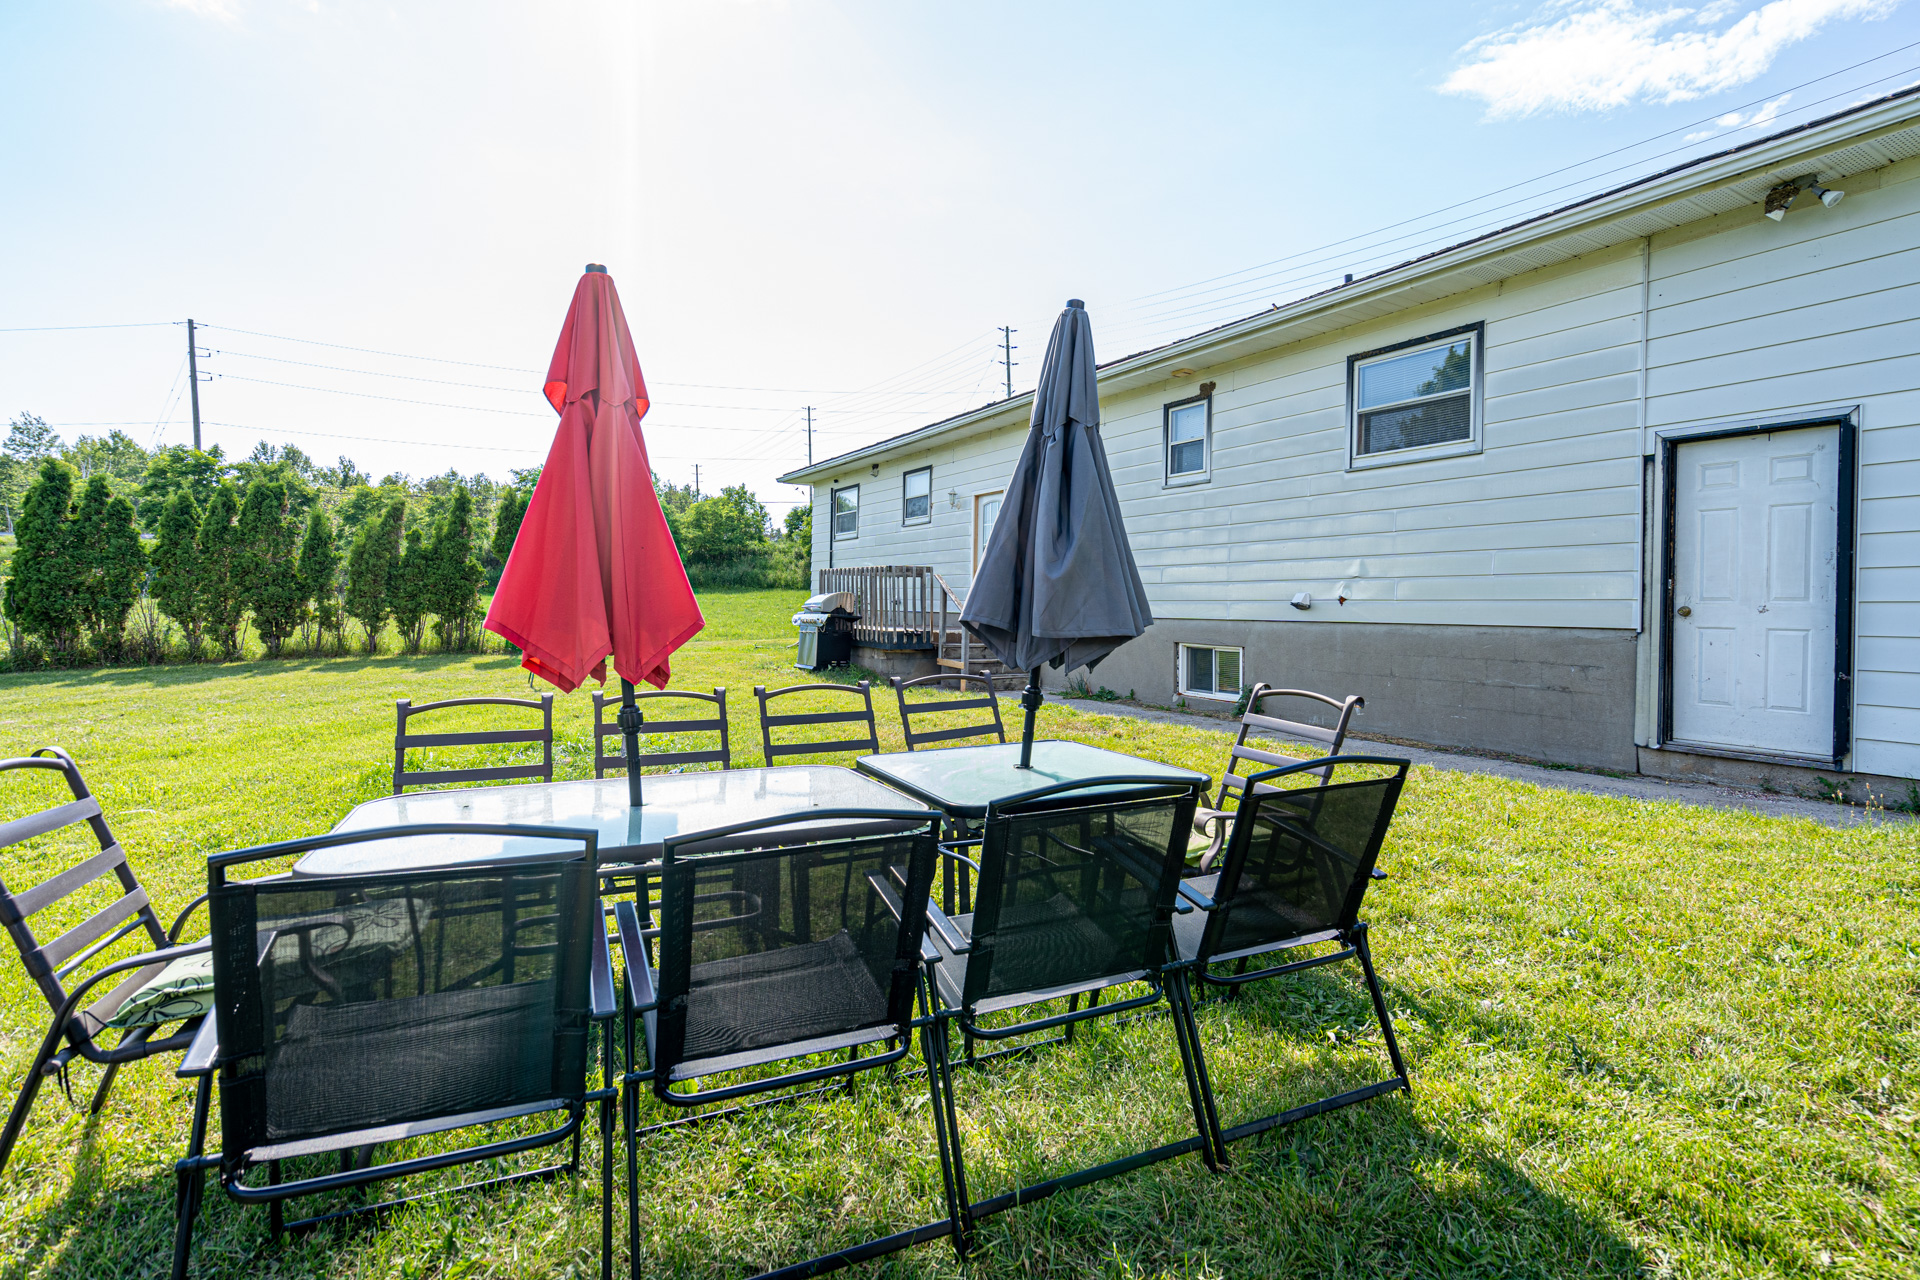 3.-purna-entire-house-innisfil-basment-unit-1-37